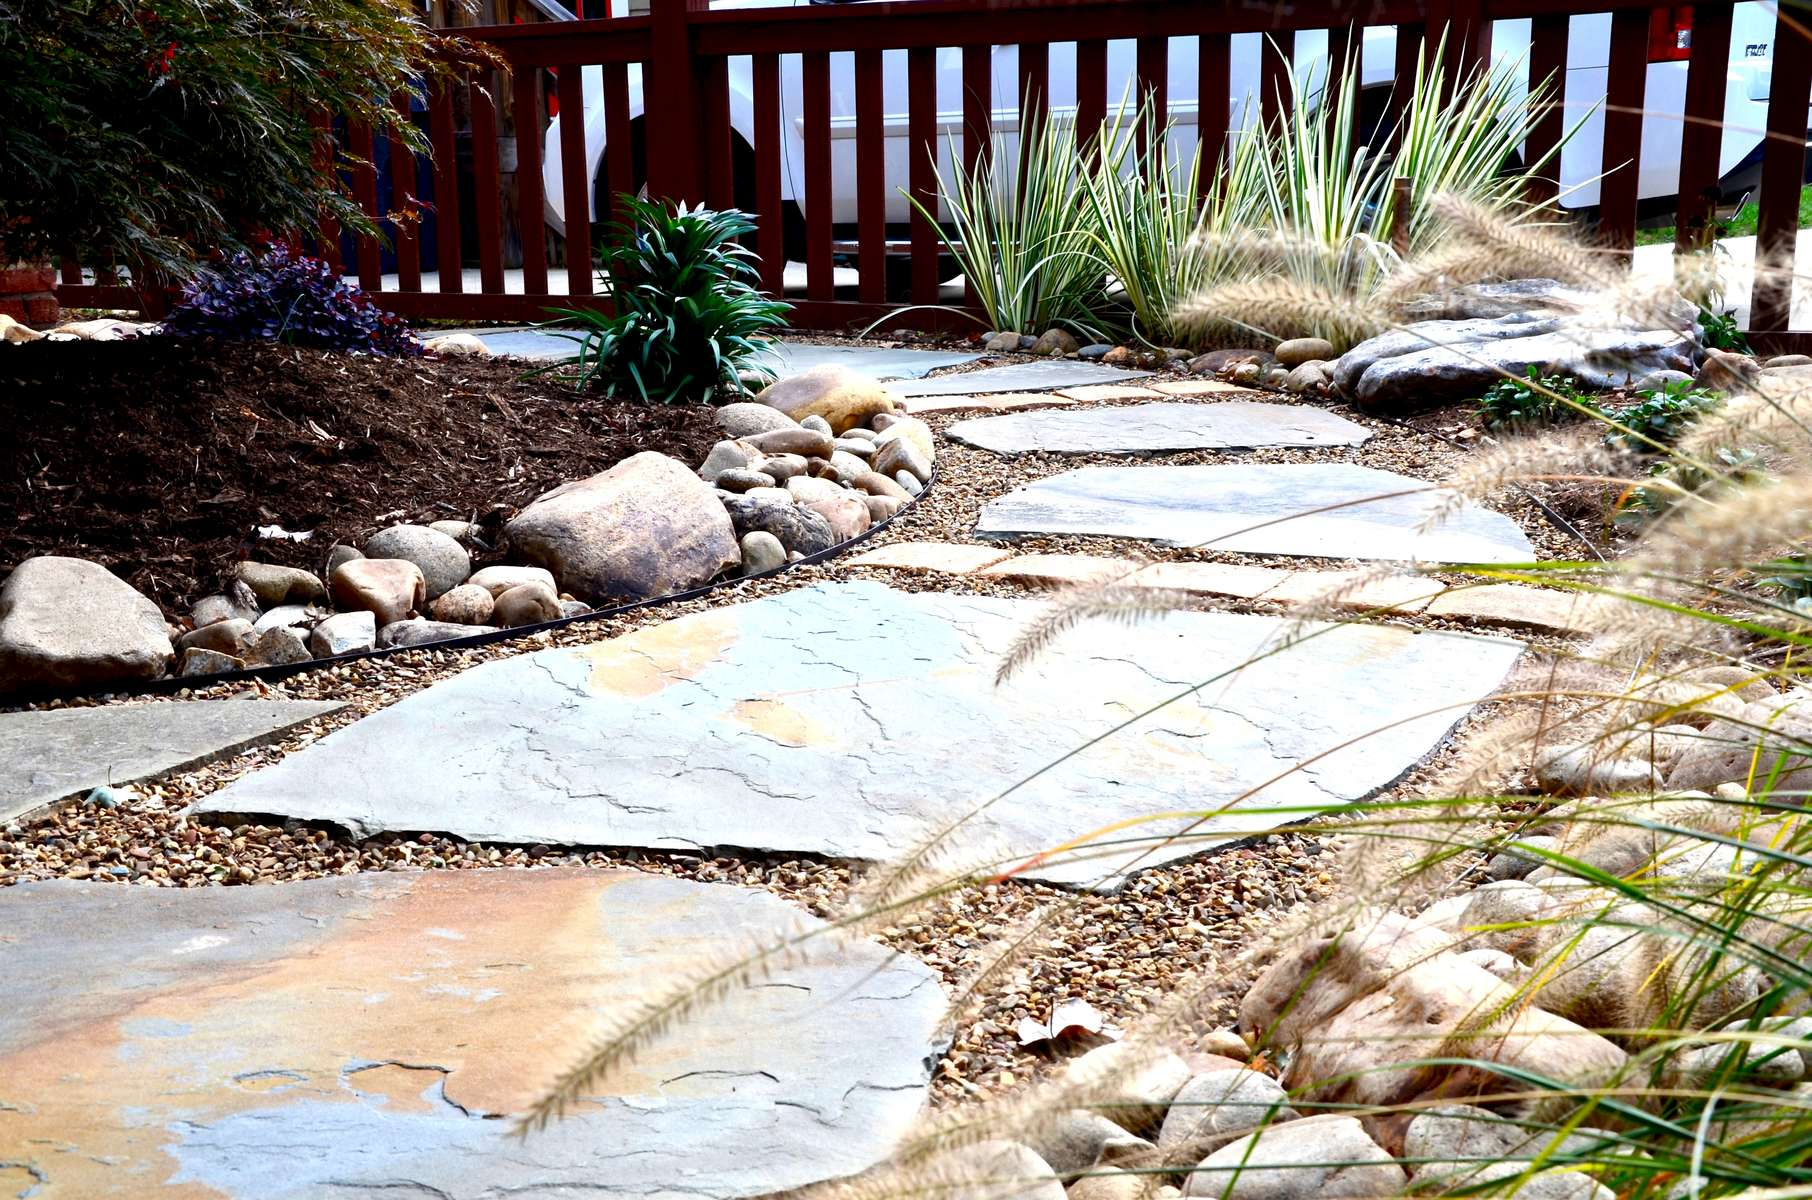 Compositions of smooth, cool river rock with boulders and over-sized natural stone paths with crushed stone infill commingle with expansive carpets of plush, colorful groundcovers in a rich, flowing ground plane.